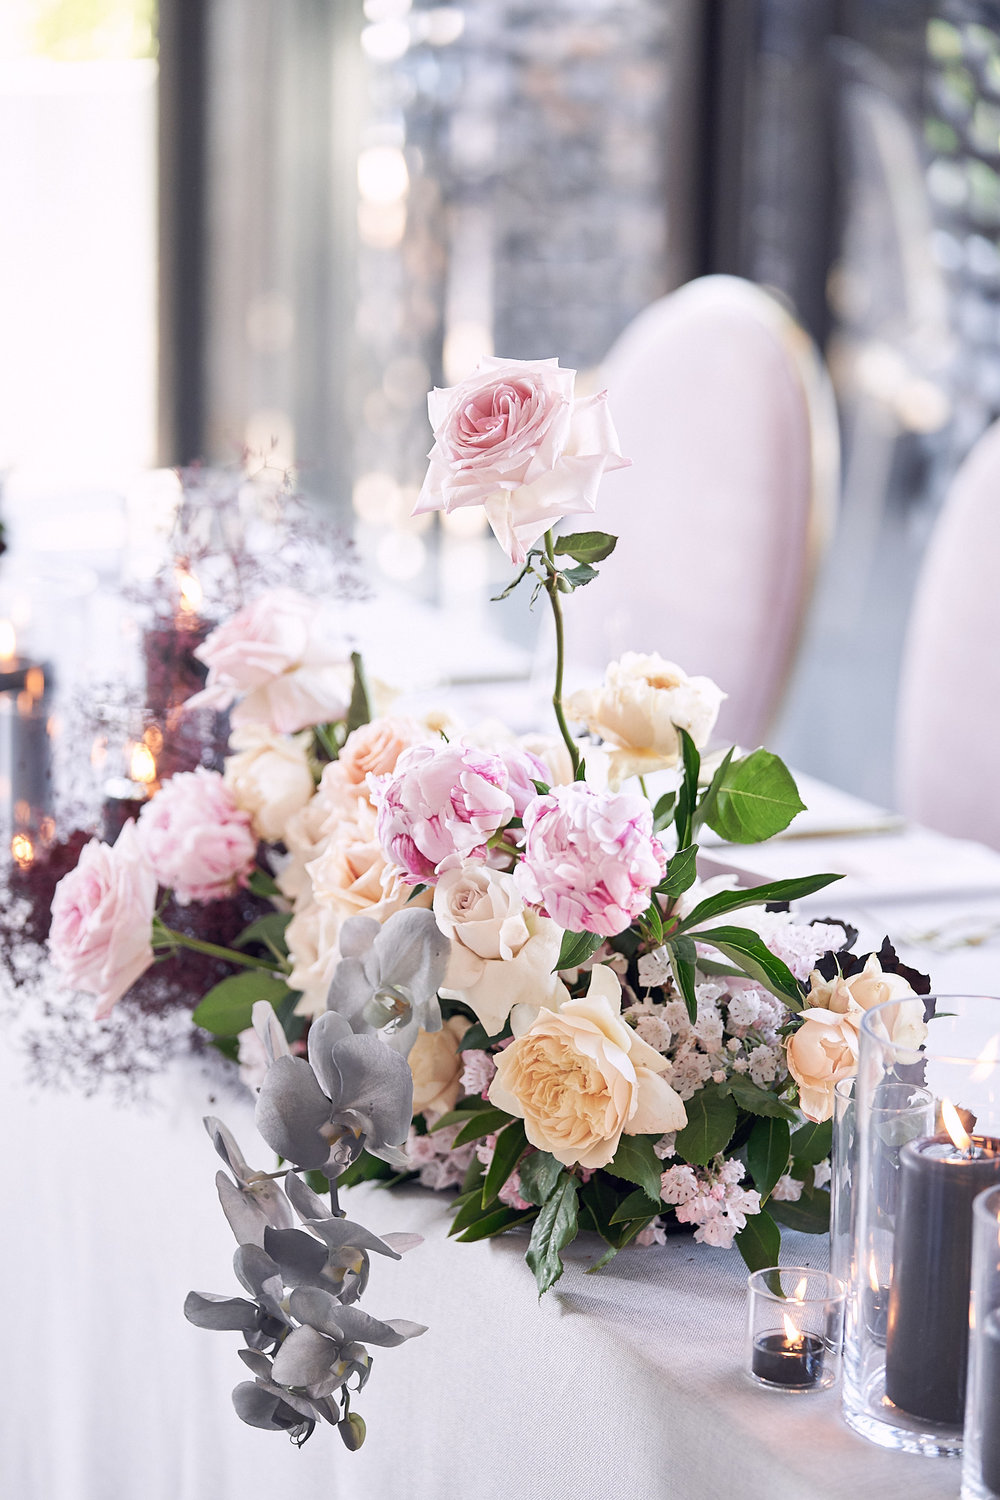 wedding styling inspiration. Pink velvet chairs. Photo by Lost In Love Photography